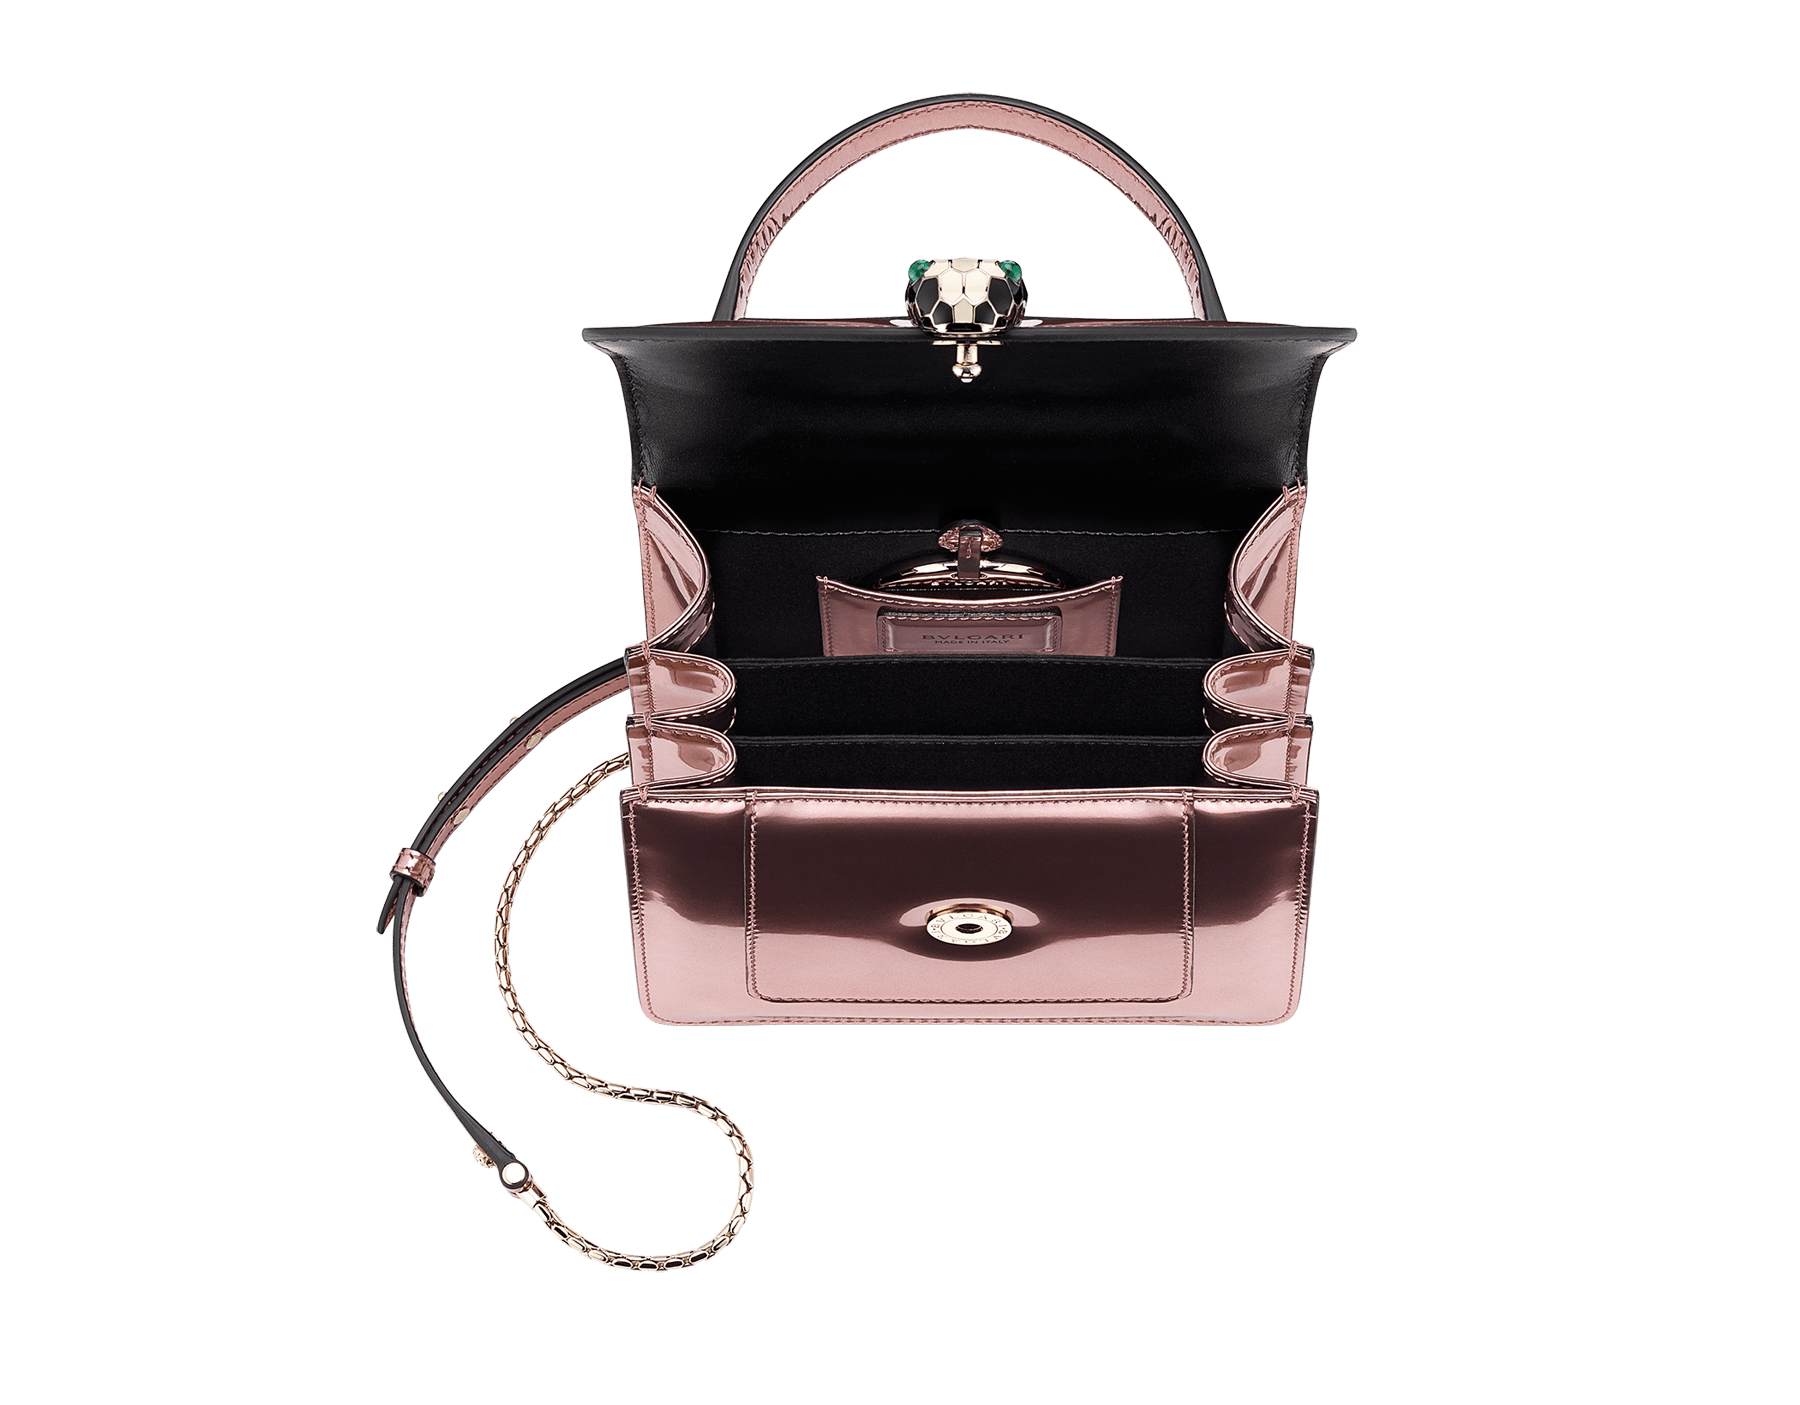 Flap cover bag Serpenti Forever in rose quartz brushed metallic calf leather. Brass light gold plated hardware and snake head closure in black and white enamel, with eyes in green malachite. 284802 image 5